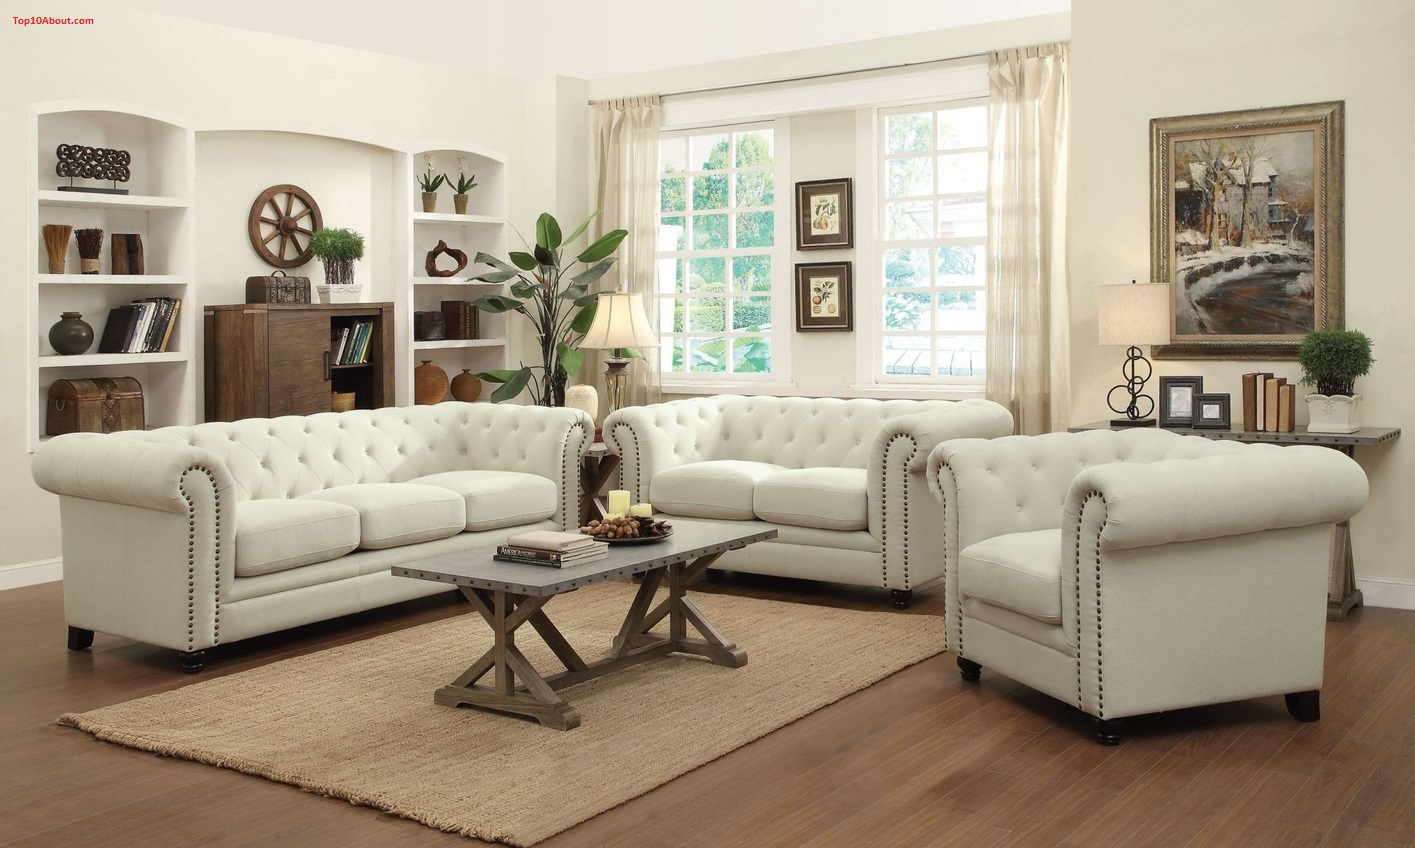 Ordinaire Top 10 Best Leather Sofa Brands In The World